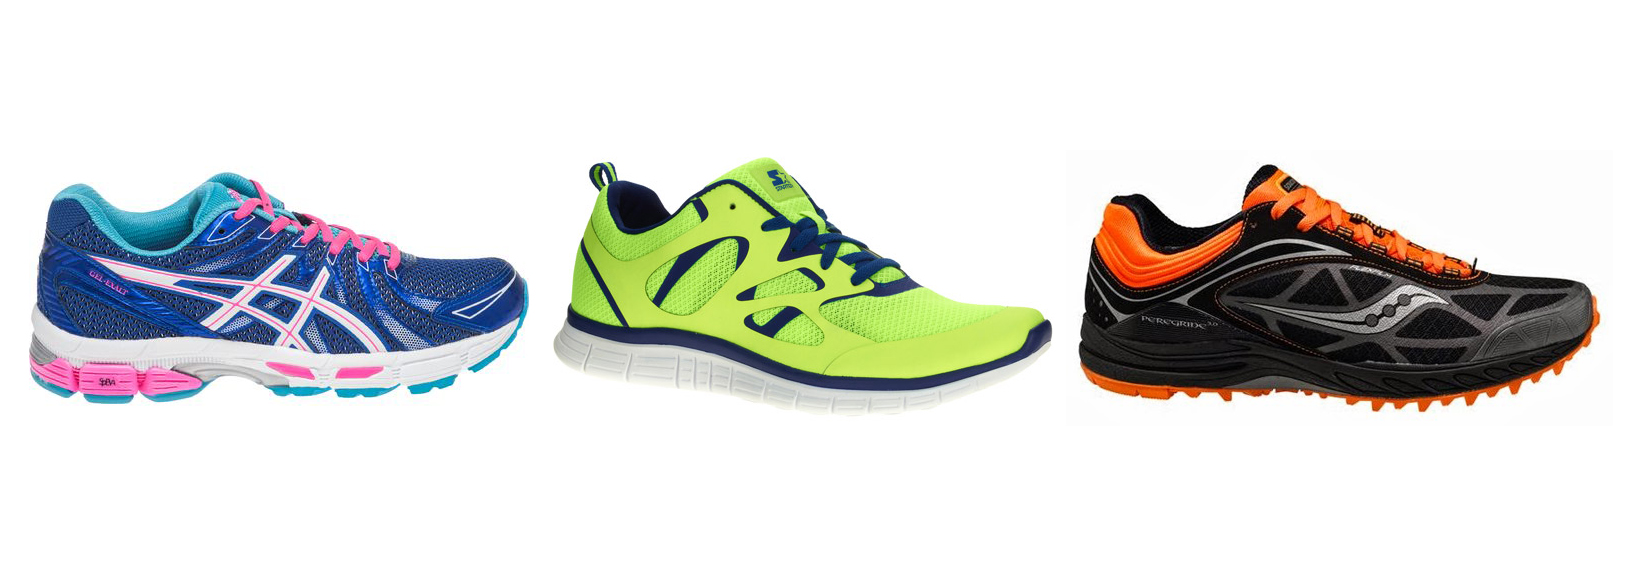 types of running shoes - 28 images